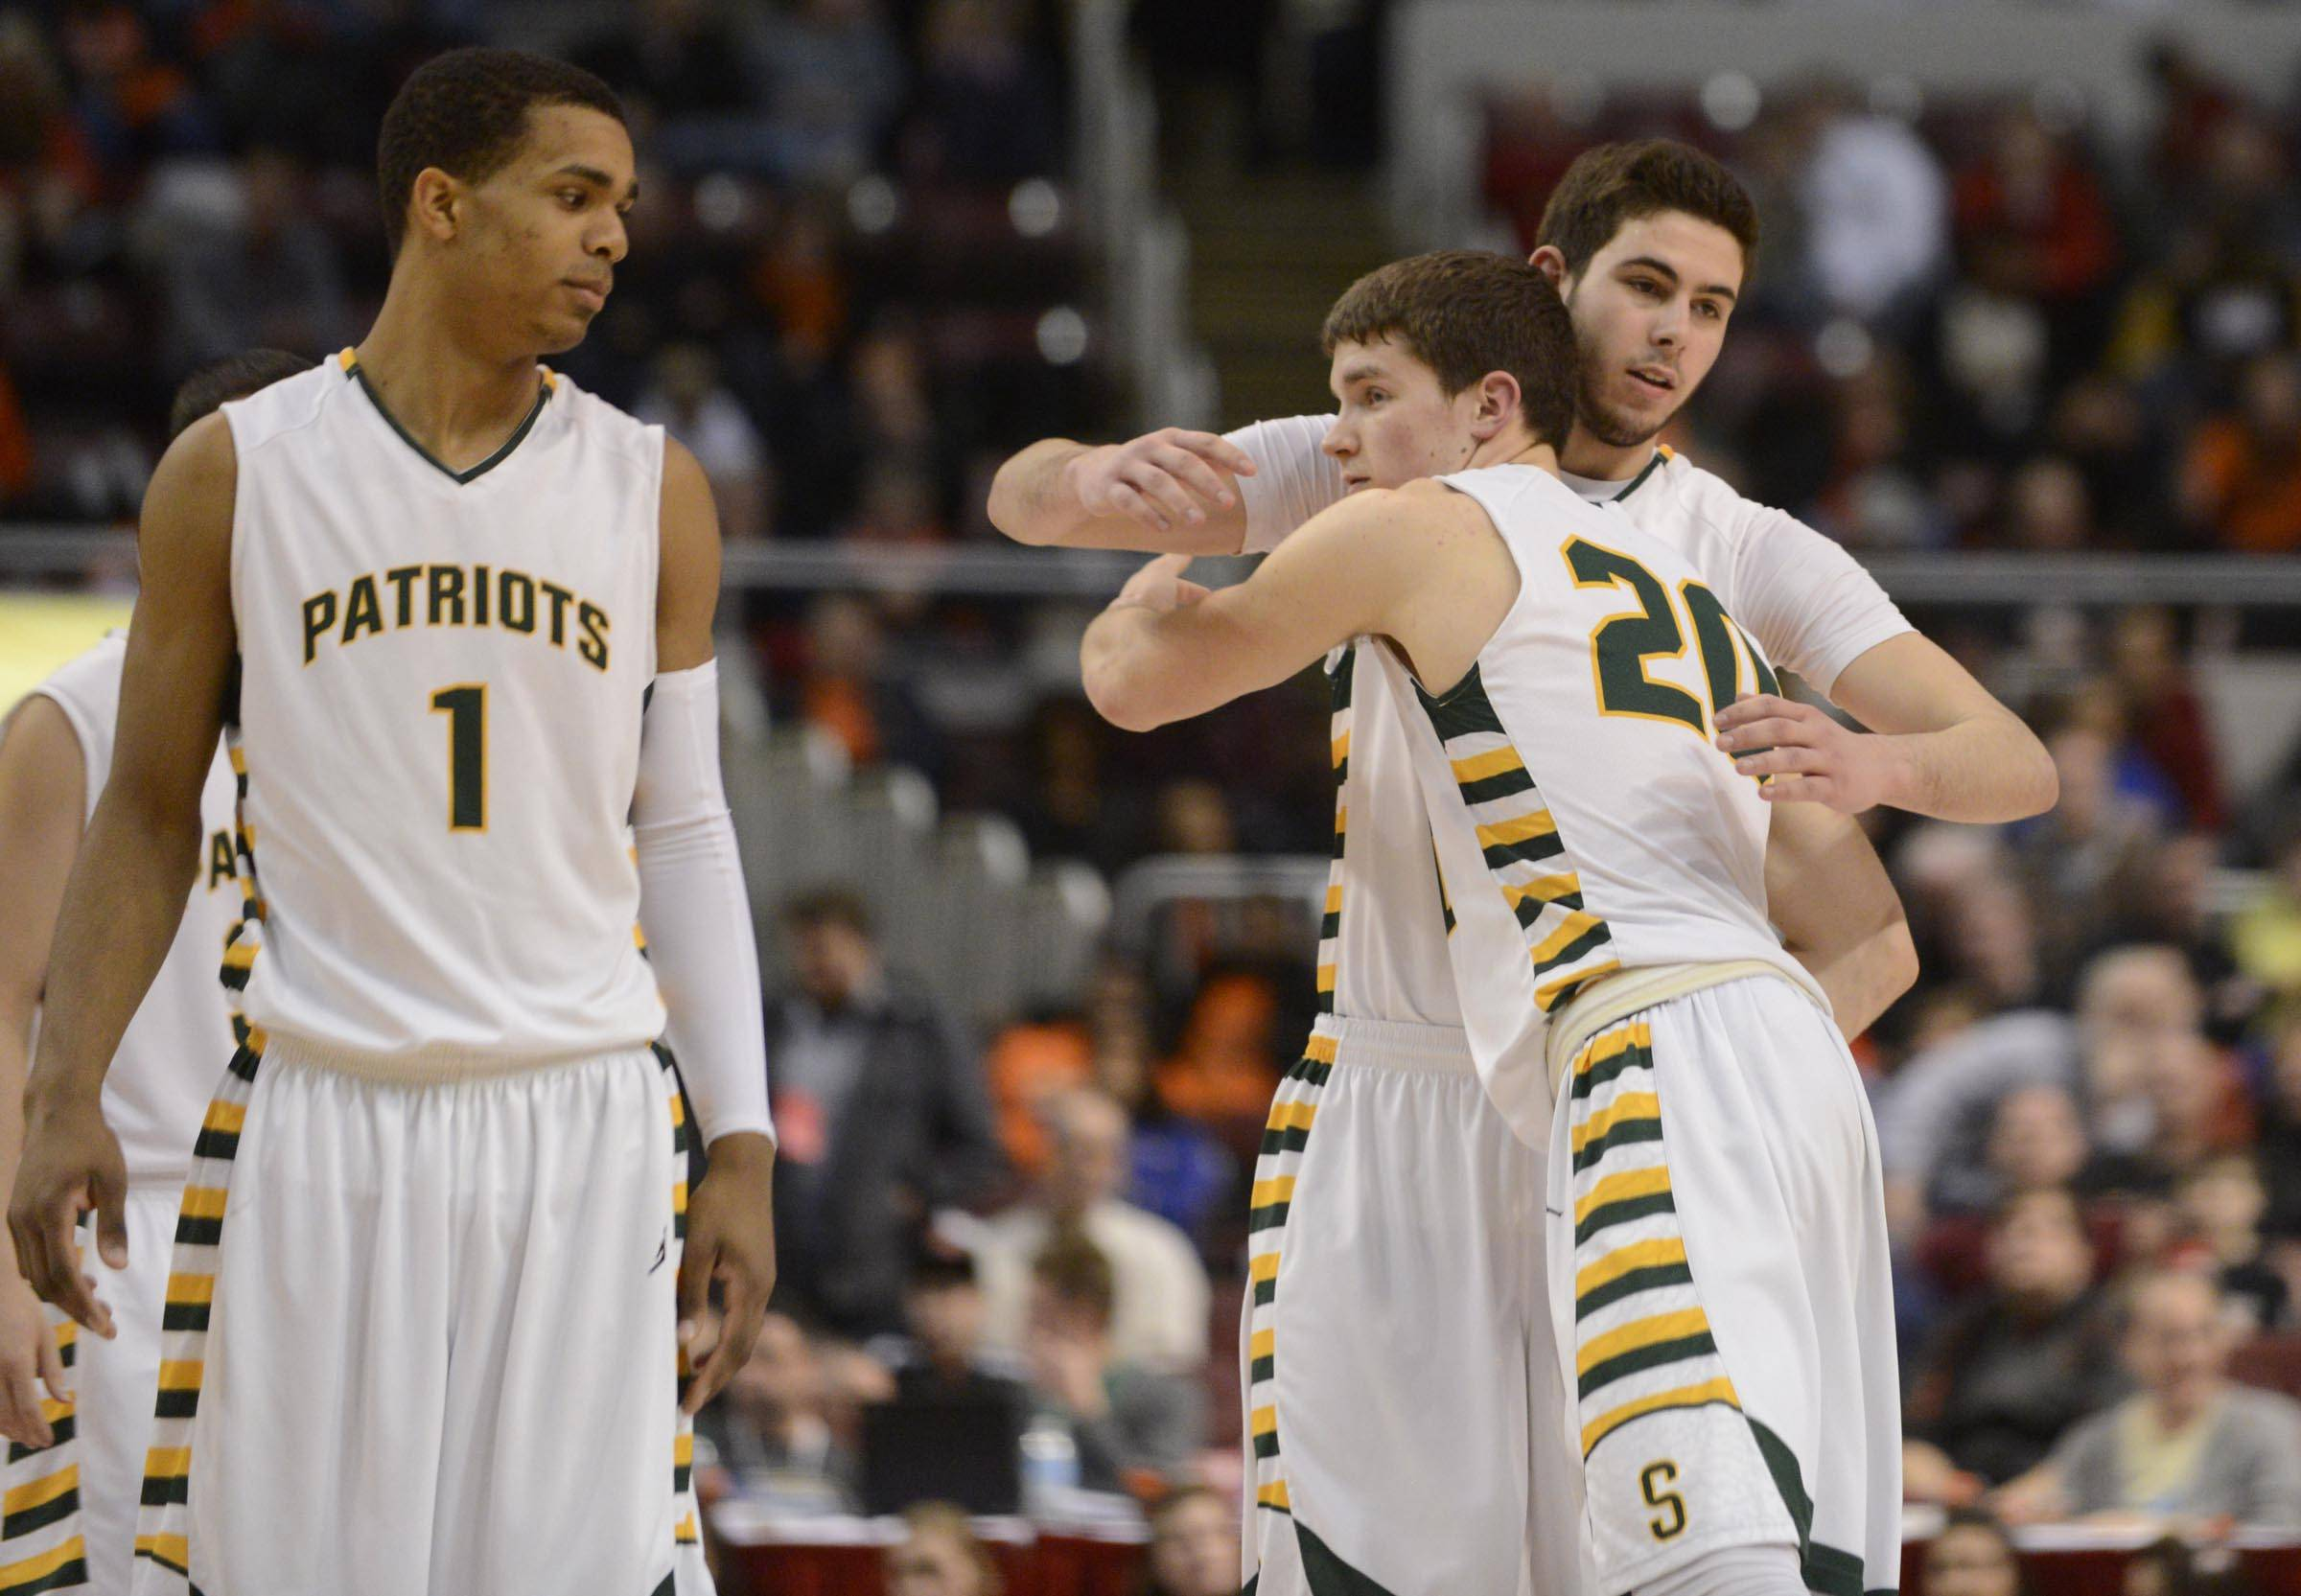 Stevenson's Connor Cashaw watches as Matt Morrissey hugs Parker Nichols before exiting the game in the final seconds of their win over Edwardsville in the Class 4A state third place game at Carver Arena in Peoria Saturday.